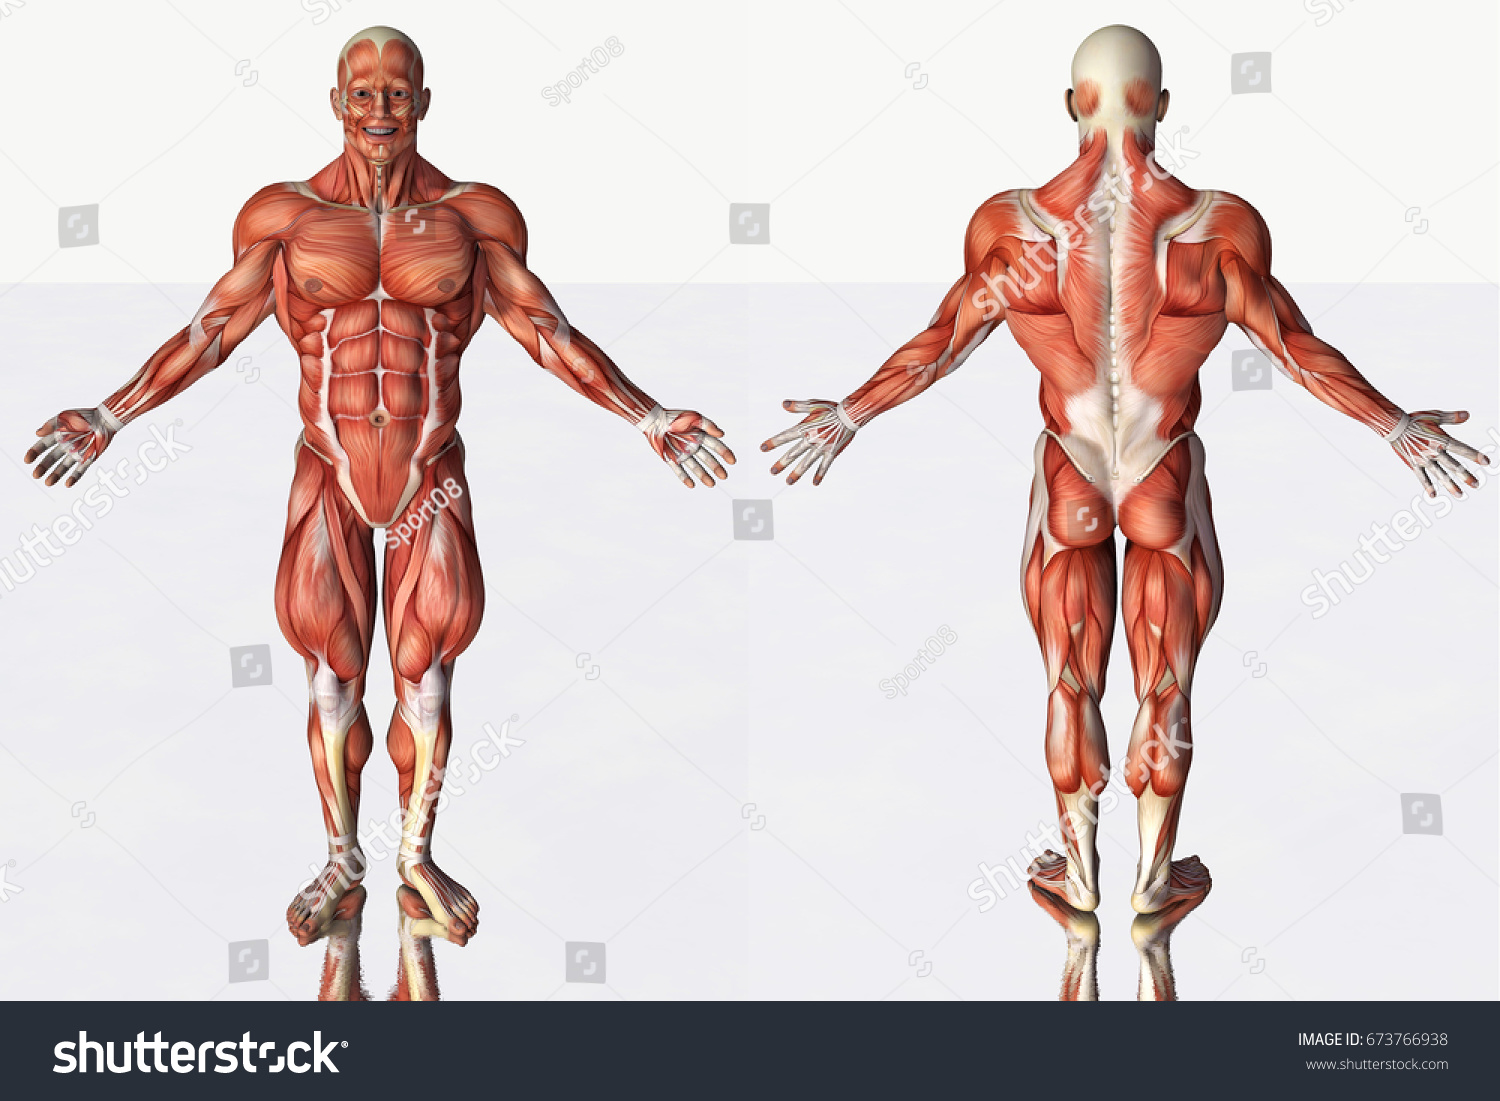 3 D Rendering Illustration Muscular Anatomical Strong Stock